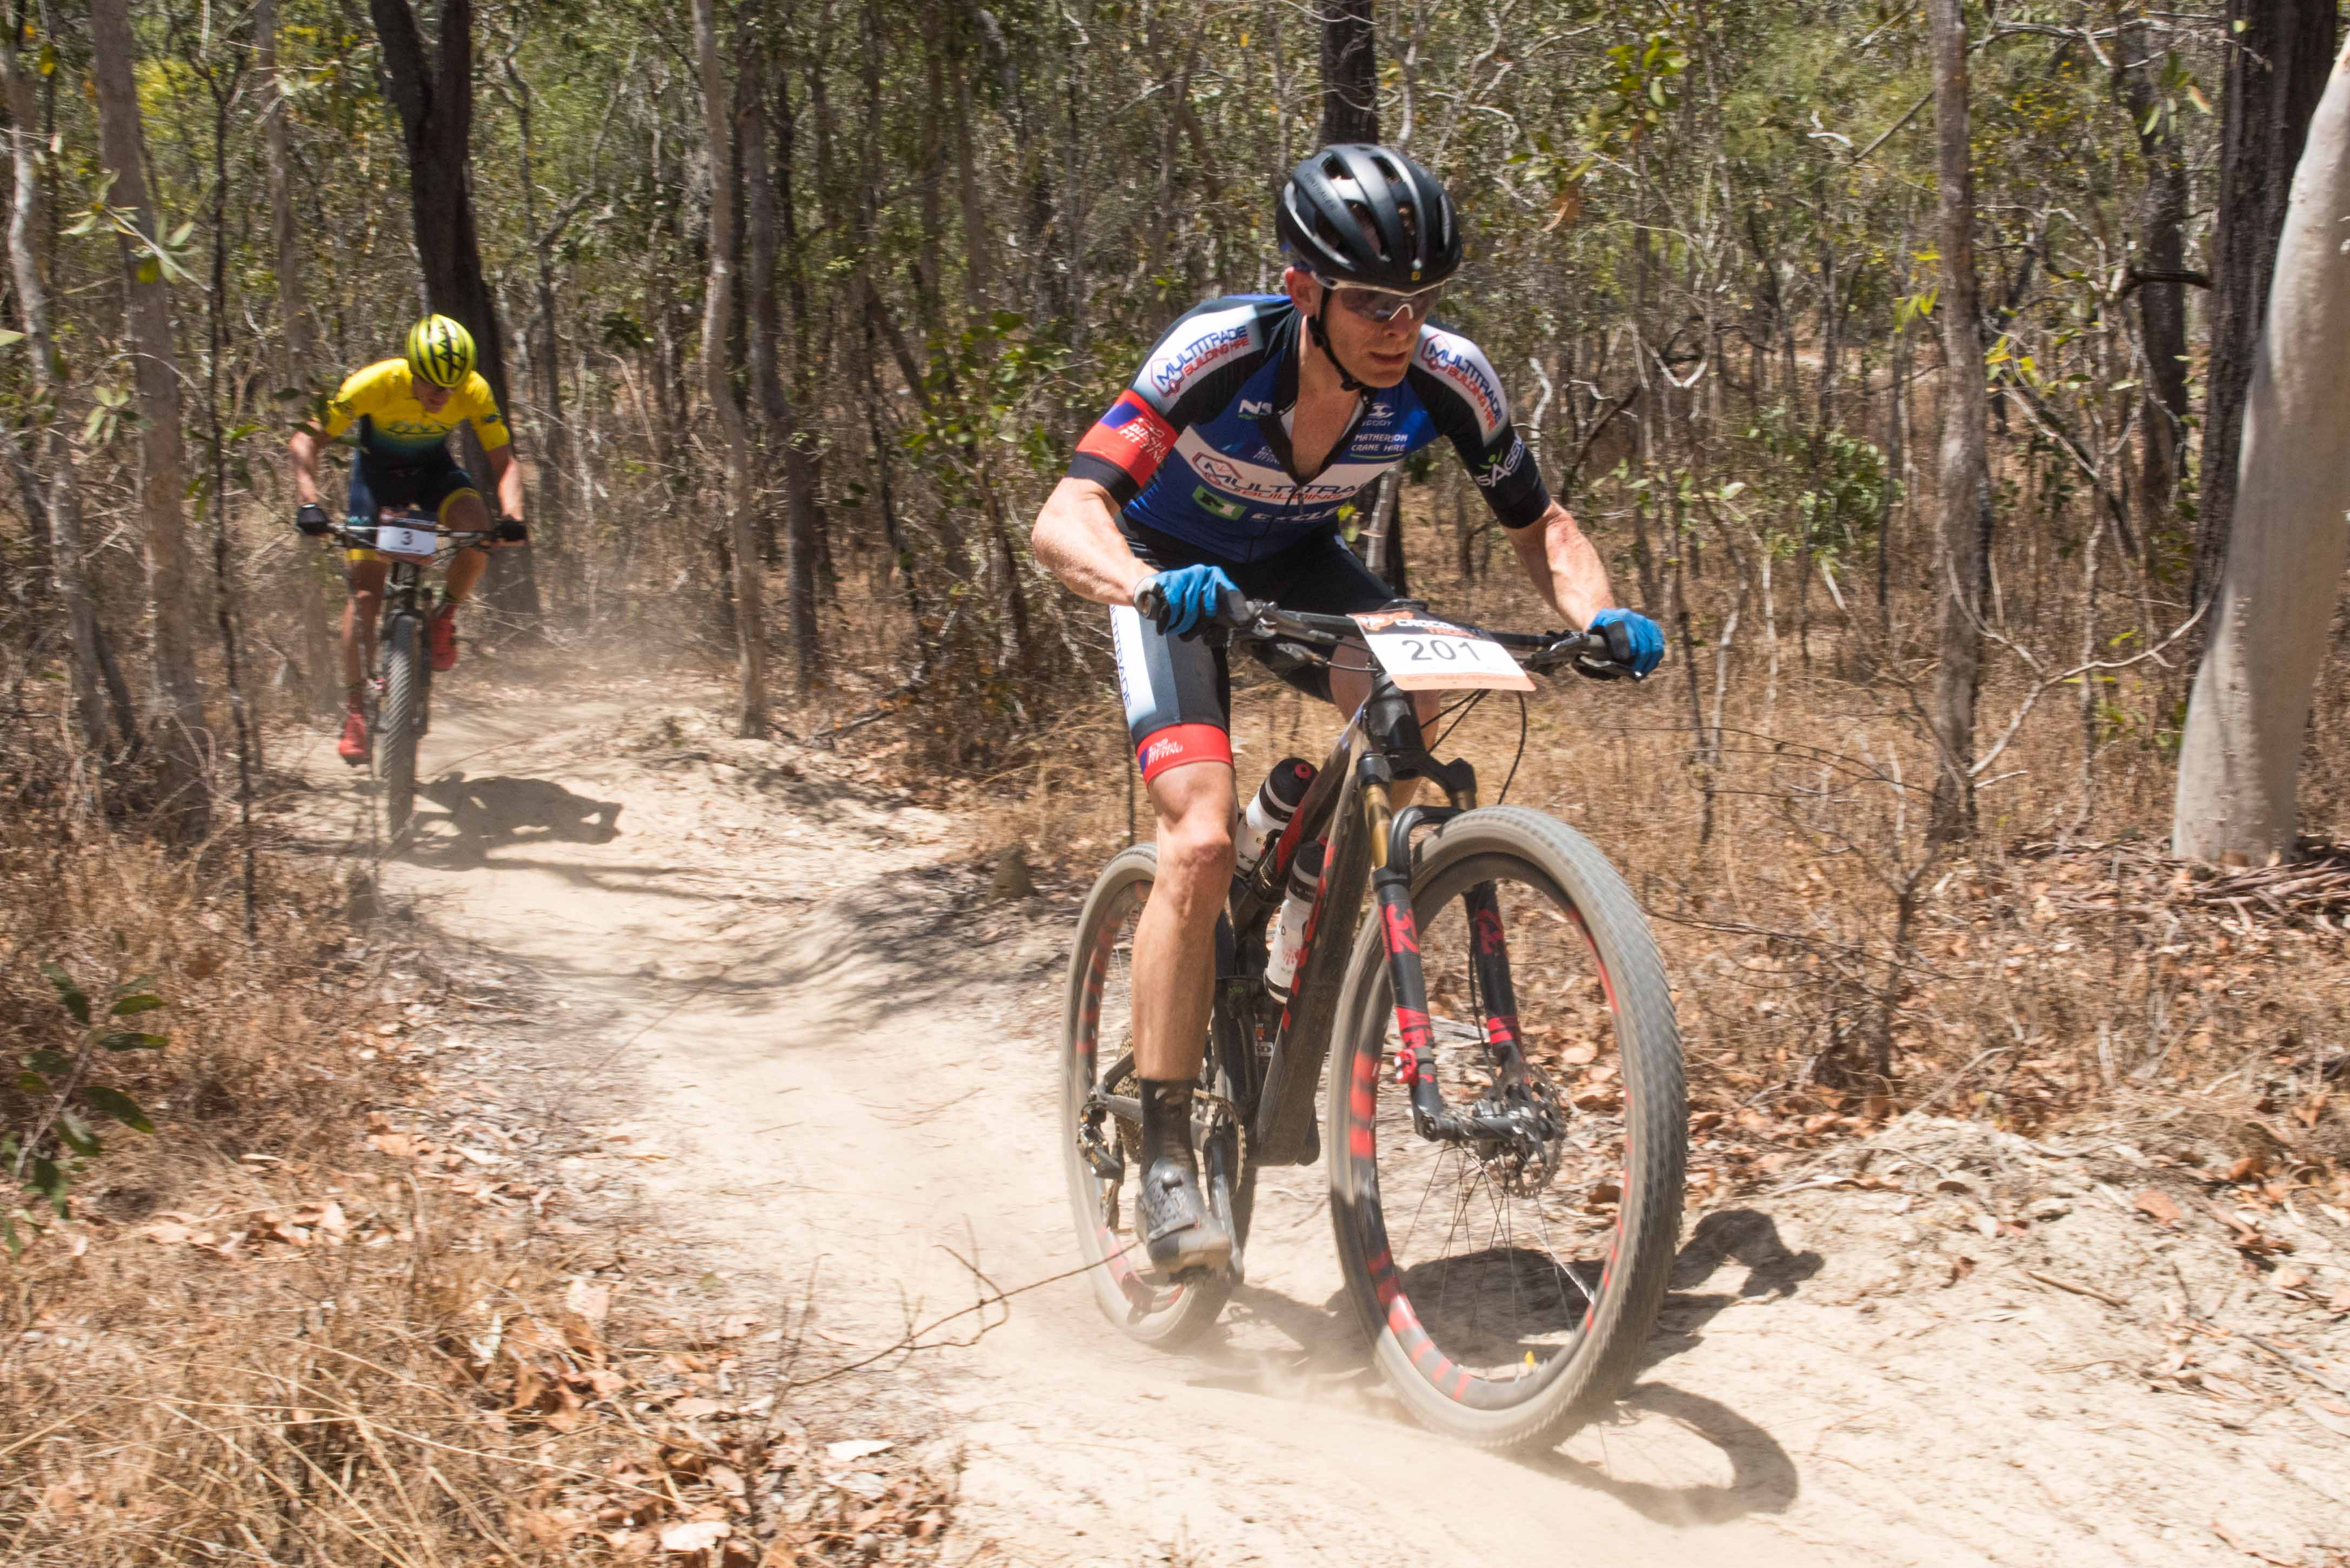 ENG: Australian stage win on day 1 of the 25th Crocodile Trophy